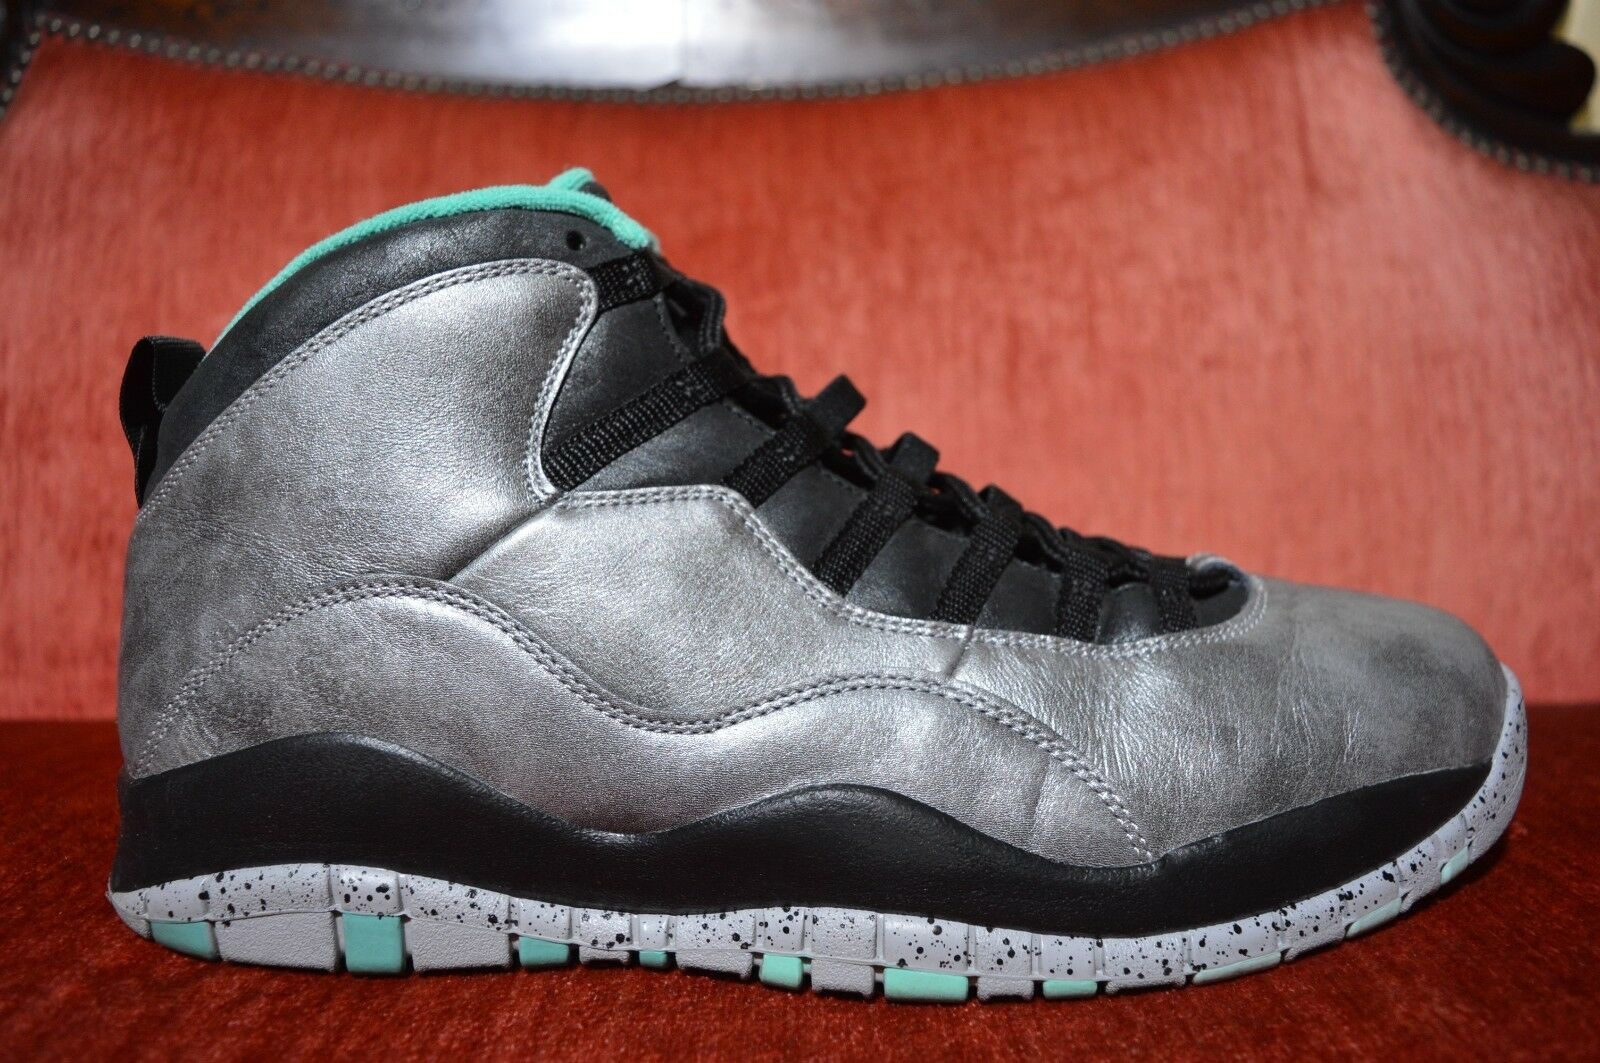 Men's Nike Air Jordan 10 Retro 705178-045 Lady of Liberty Statue 705178-045 Retro Size 13 6c3e46